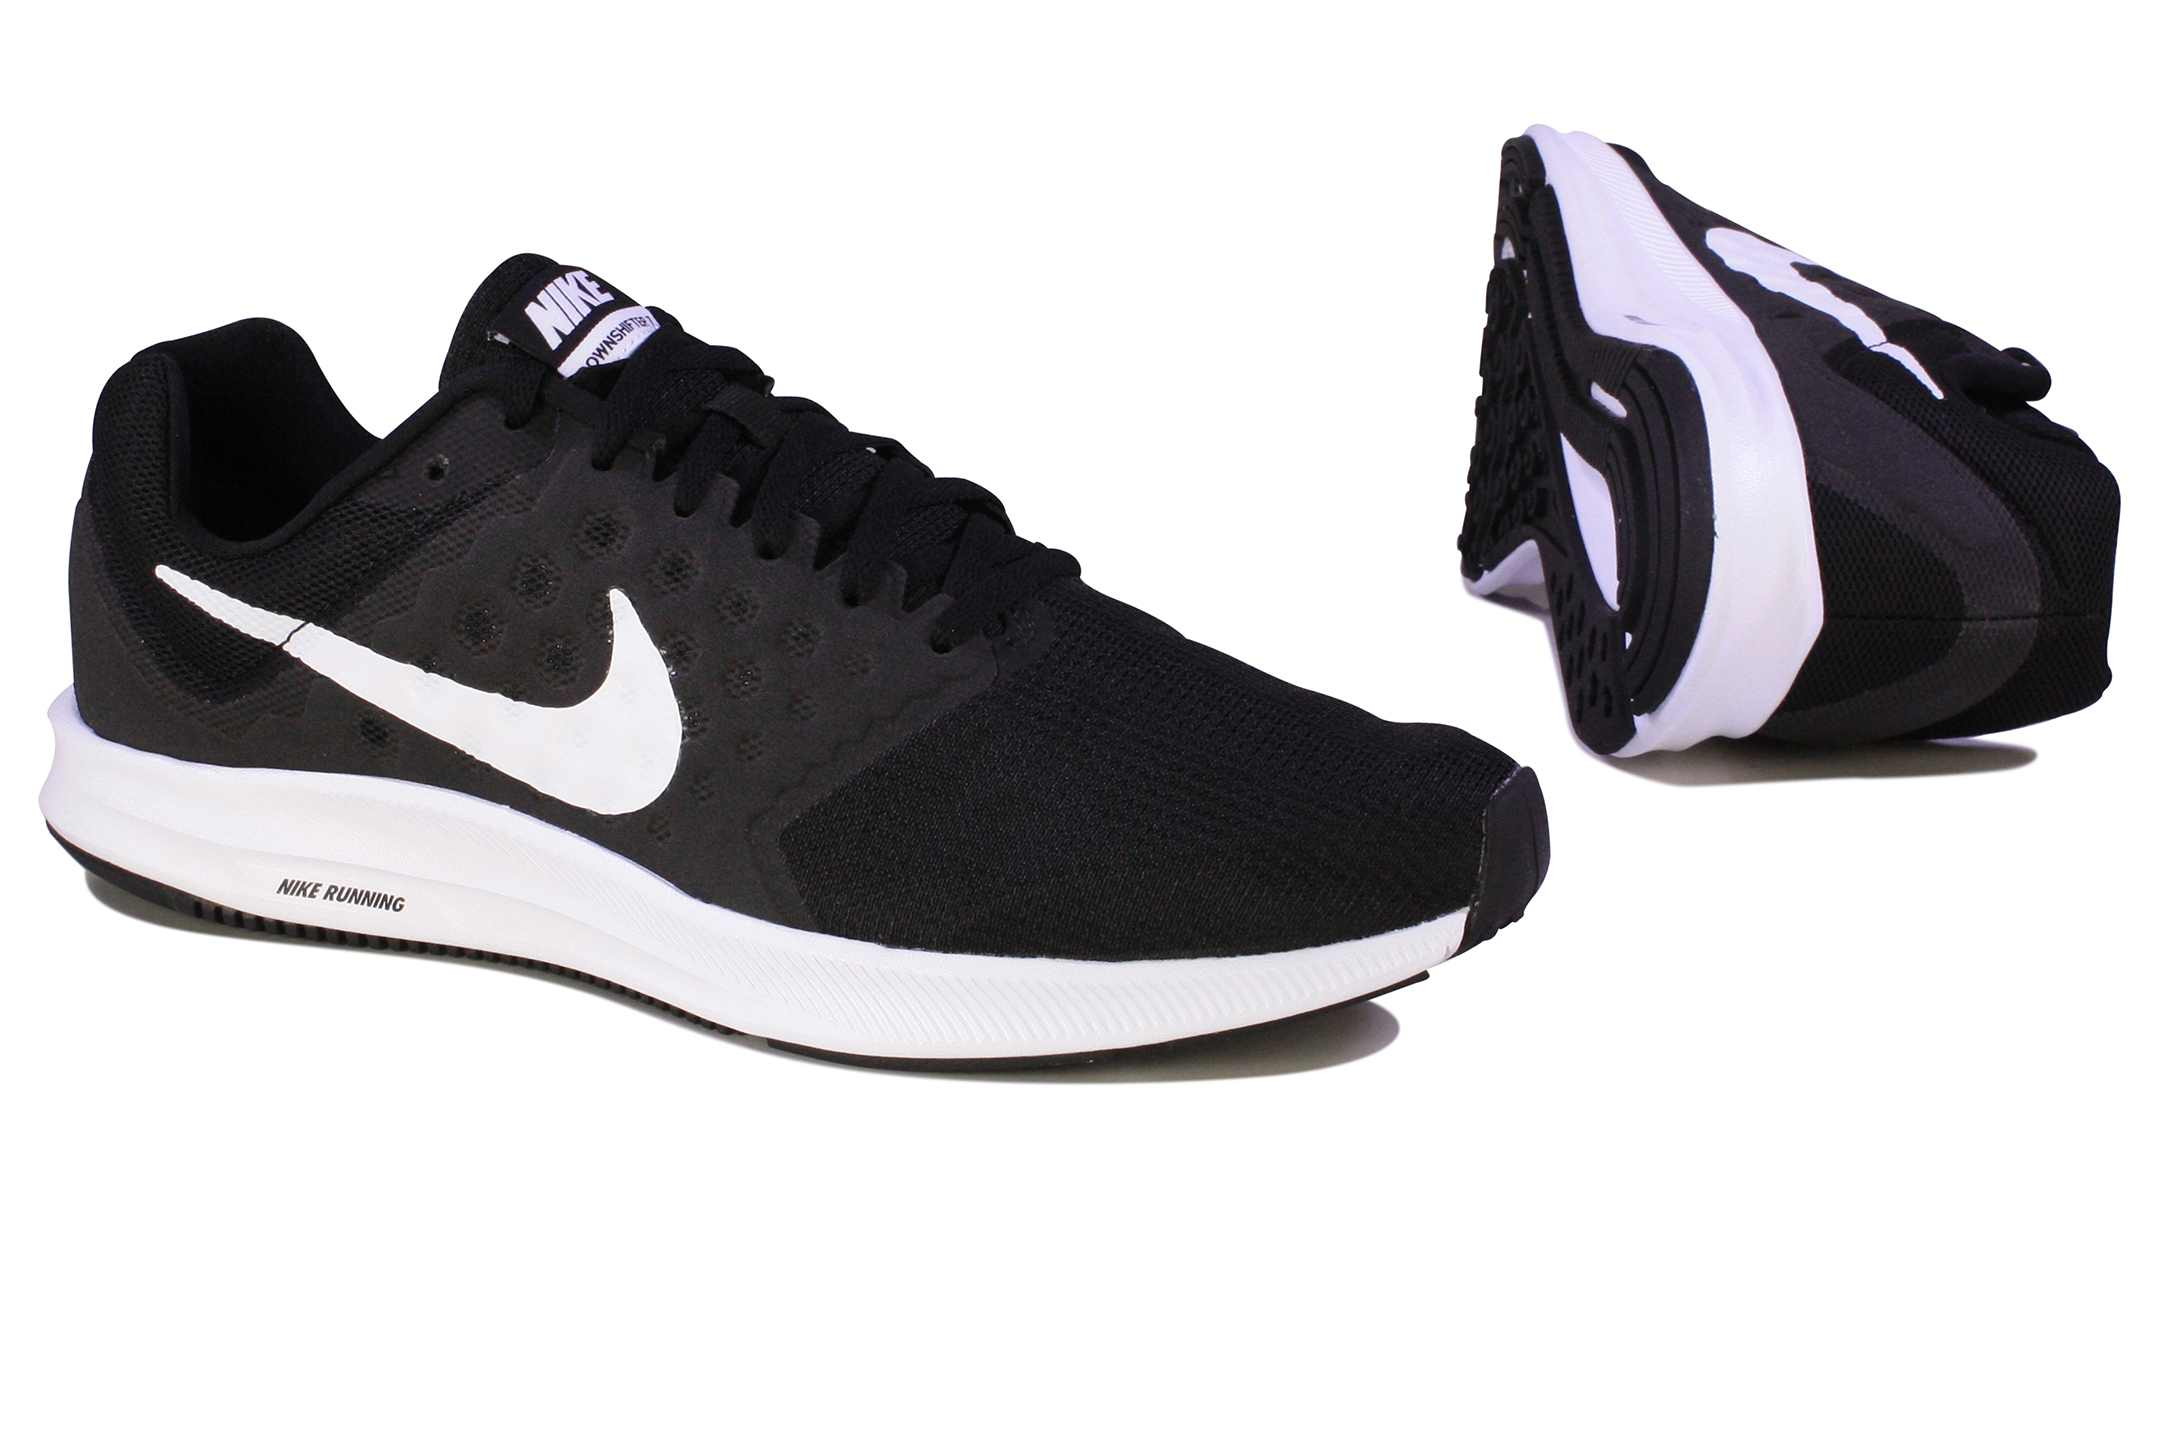 b18b1fbadac7 Other Men s Shoes - NIKE - DOWNSHIFTER 7 852459-002 (Size   7) was ...